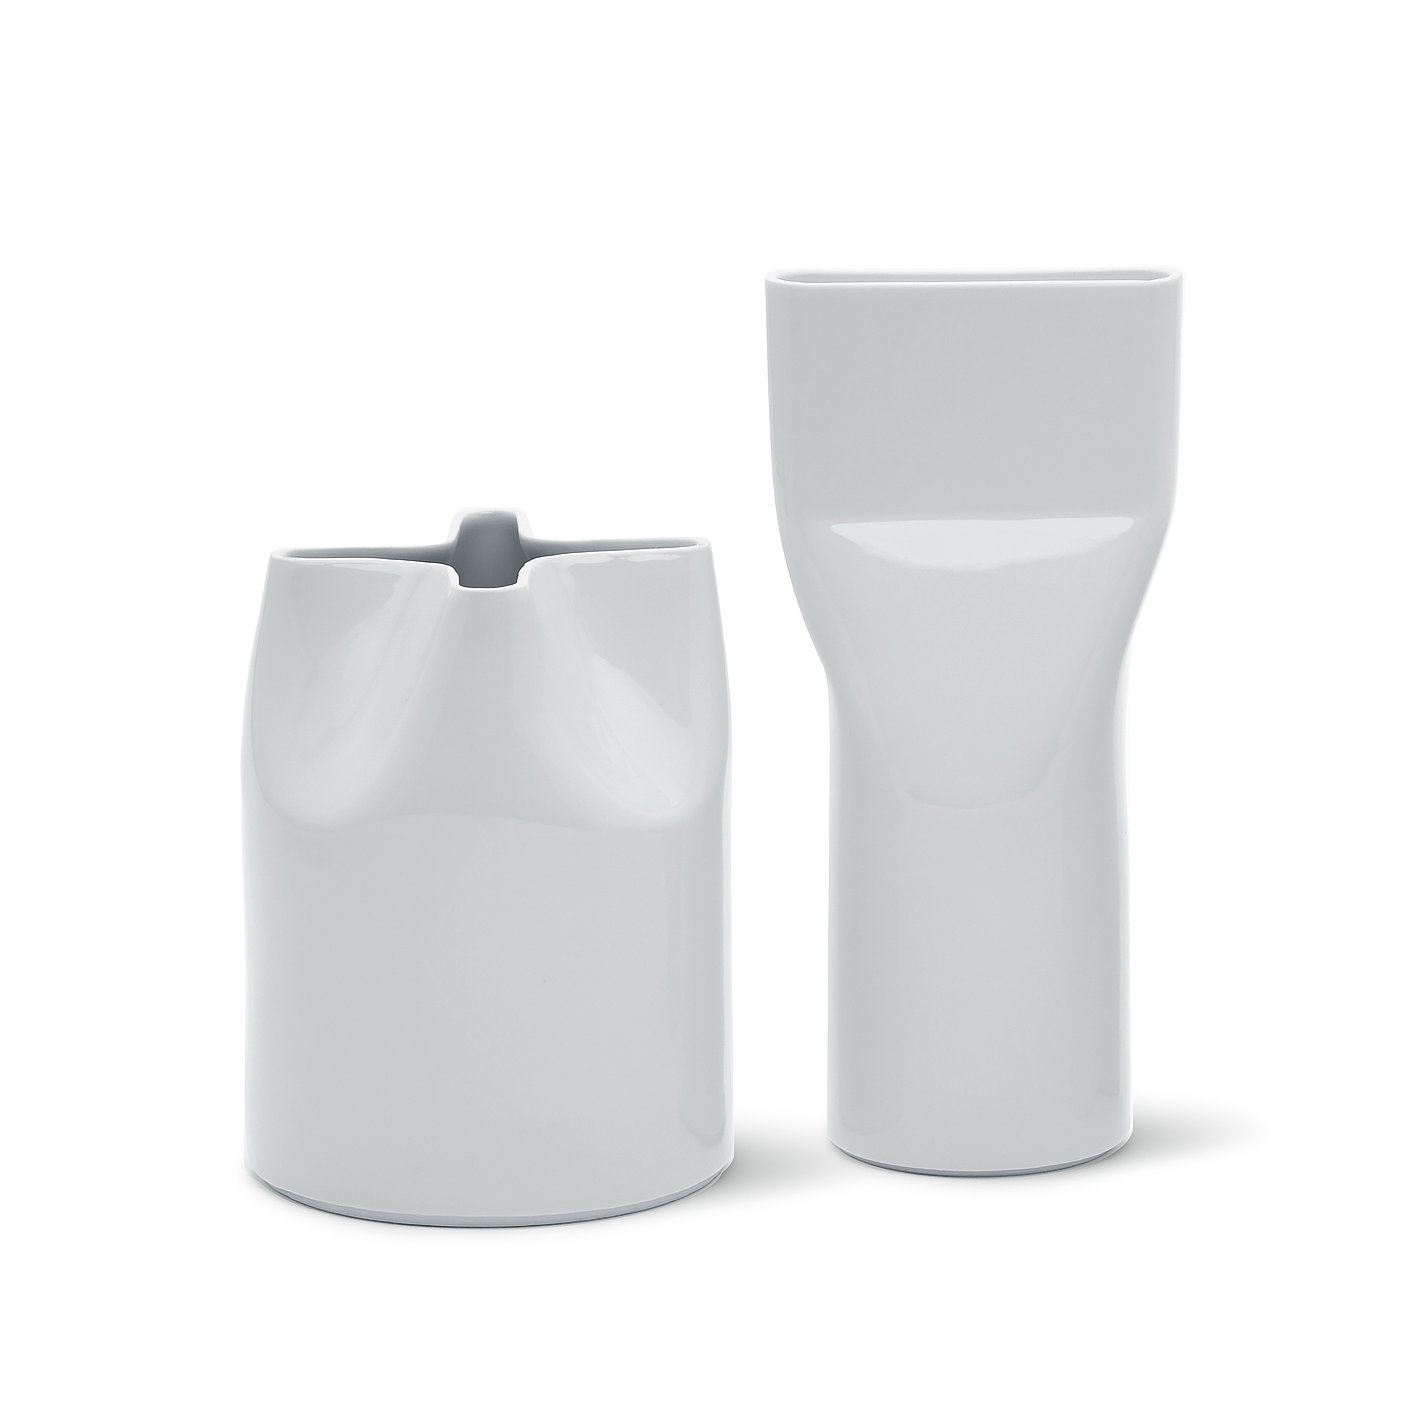 PlusMinus Vases | Red Dot Design Award